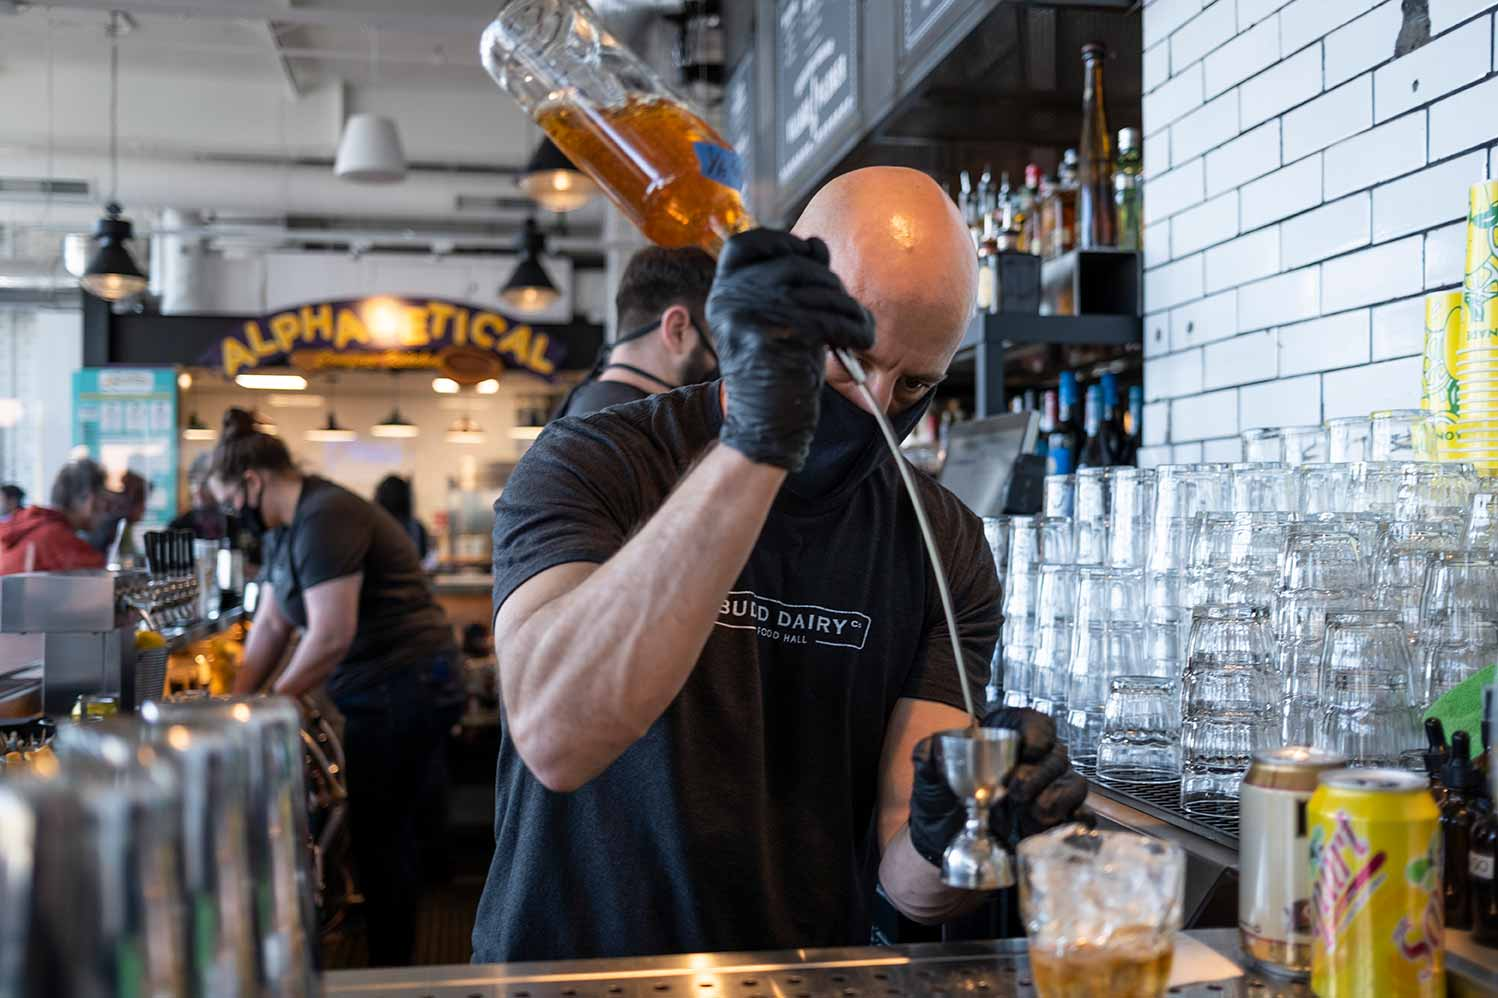 Bartender with one arm raised pouring liquor into glass below.